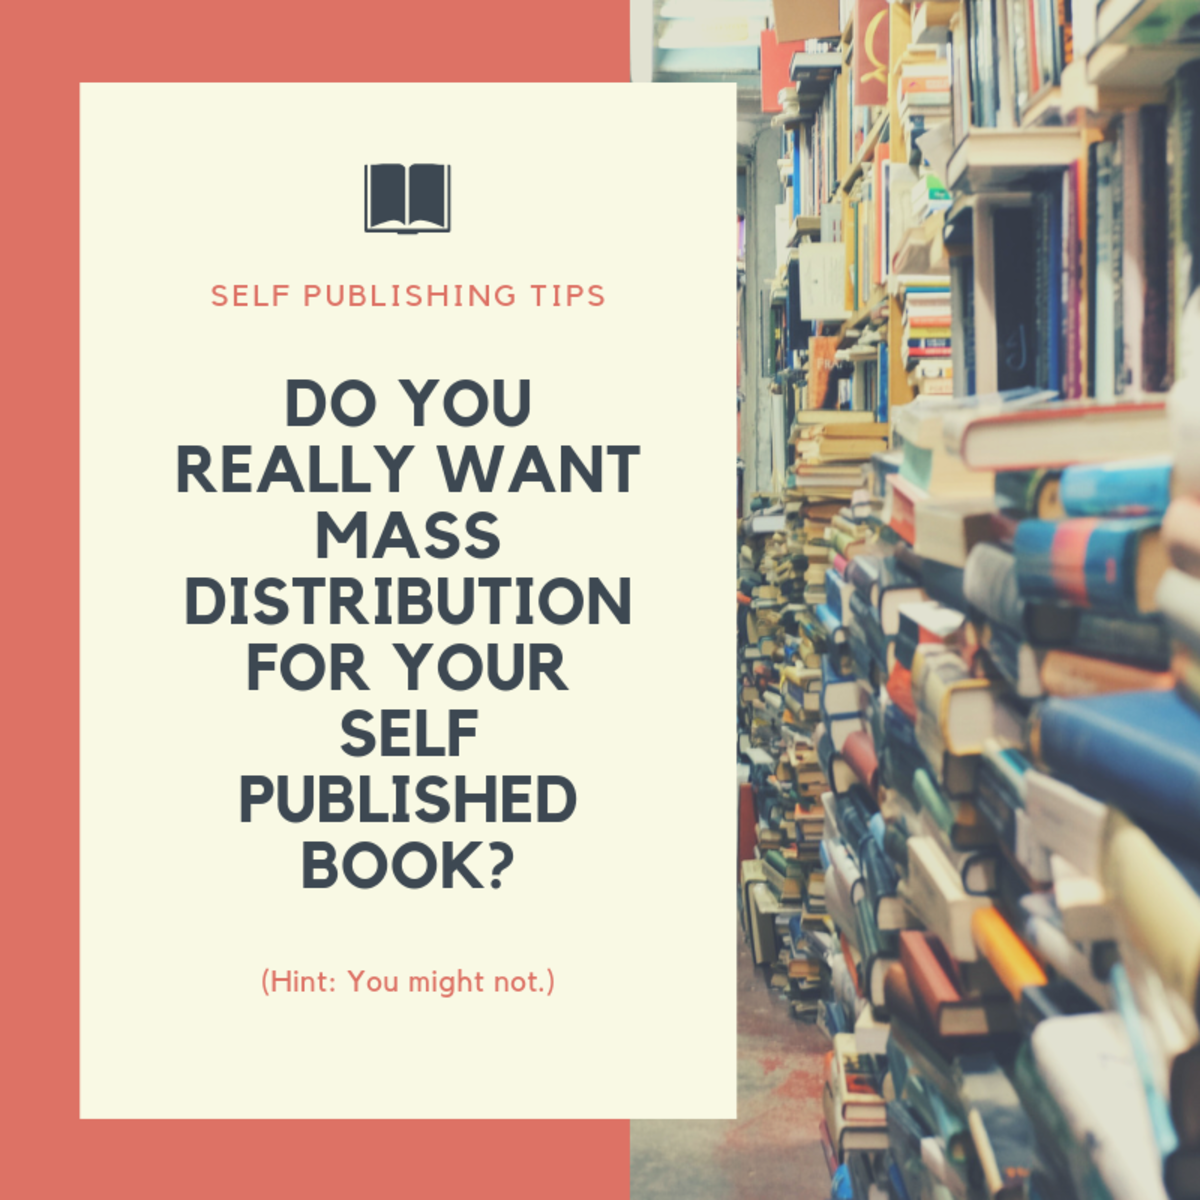 Do You Really Want Mass Distribution for Your Self Published Book?